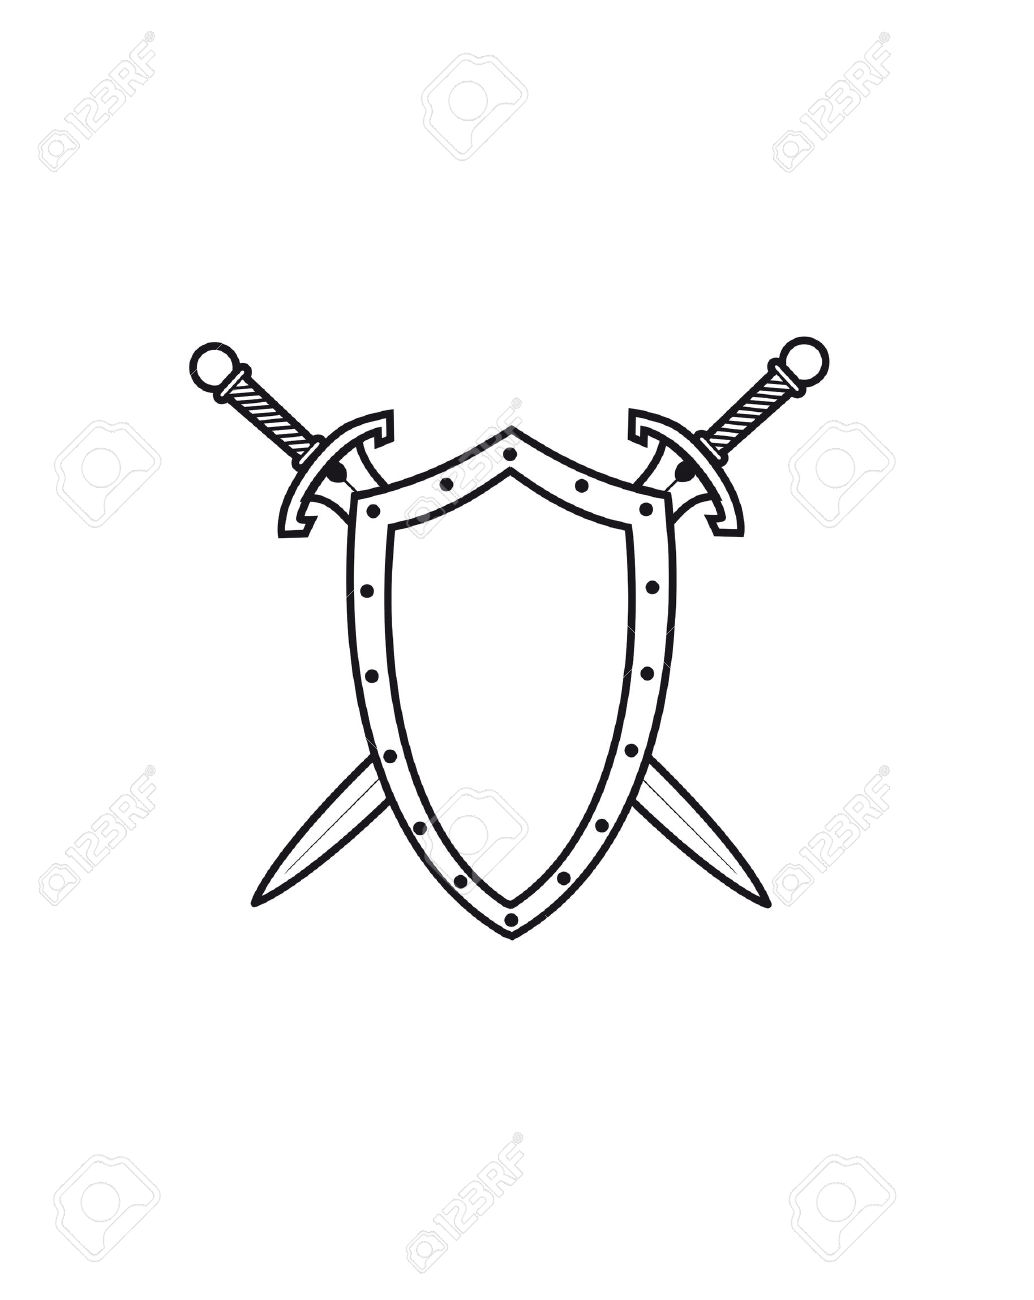 1034x1300 Coat Of Arms. Vector Illustration. (Shield, Sword, Arms